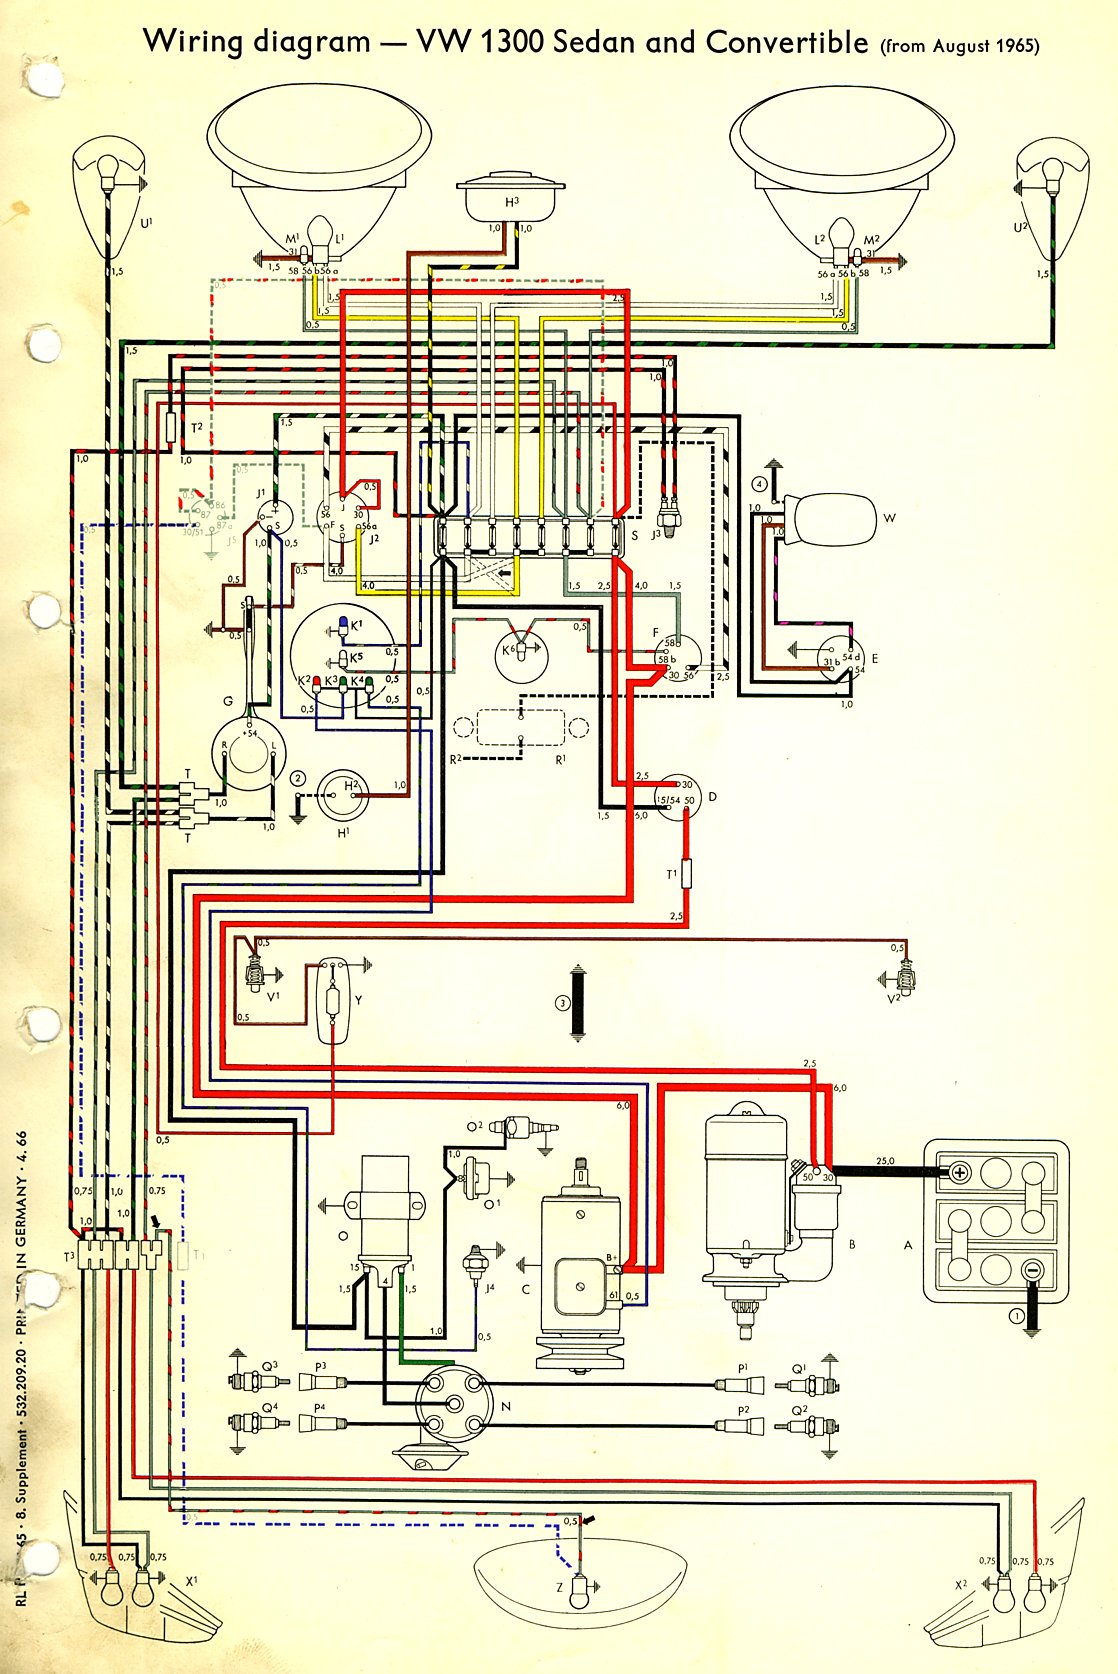 1975 Volkswagen Beetle Wiring Diagram Libraries